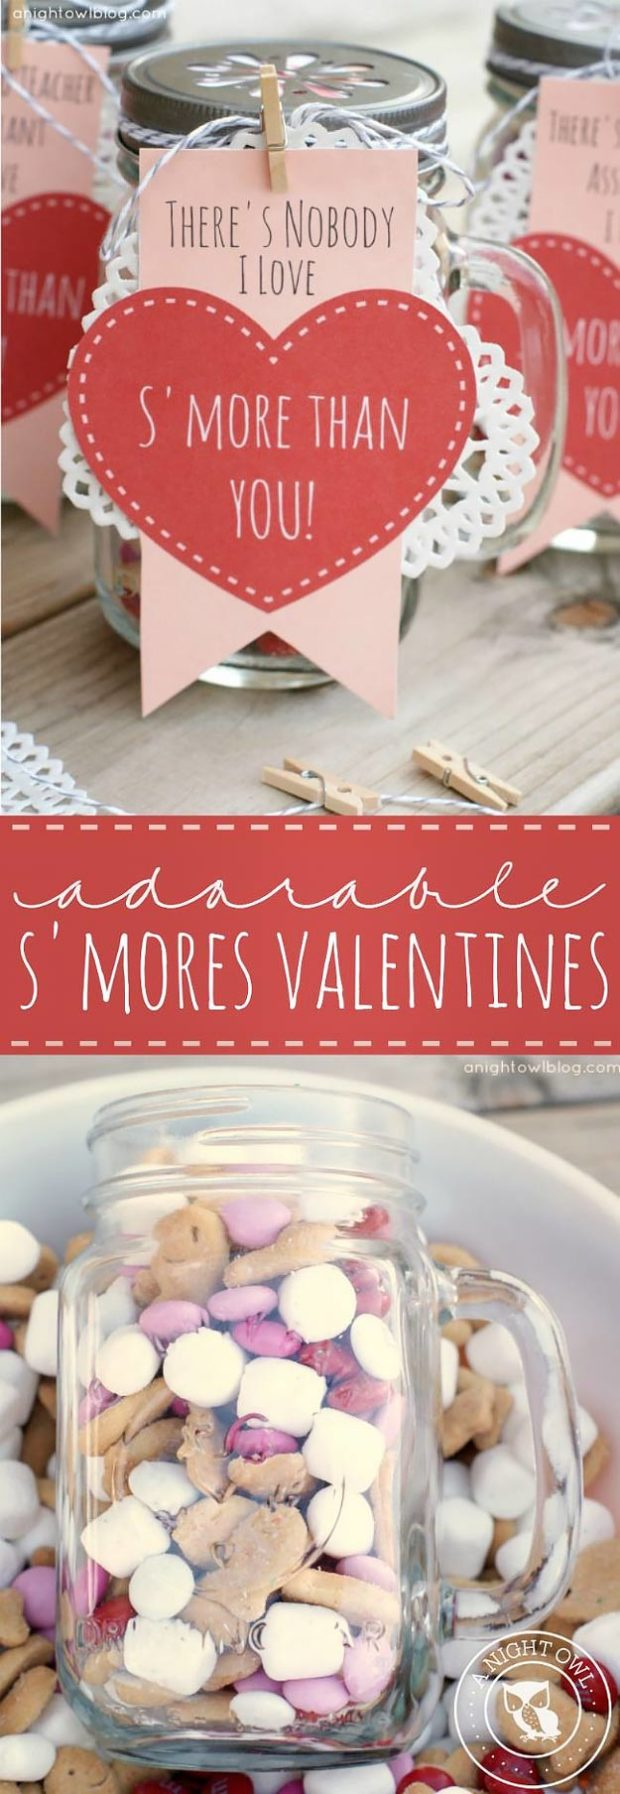 16 Amazing DIY Valentine's Day Gift Ideas for Her that are Easy to Make